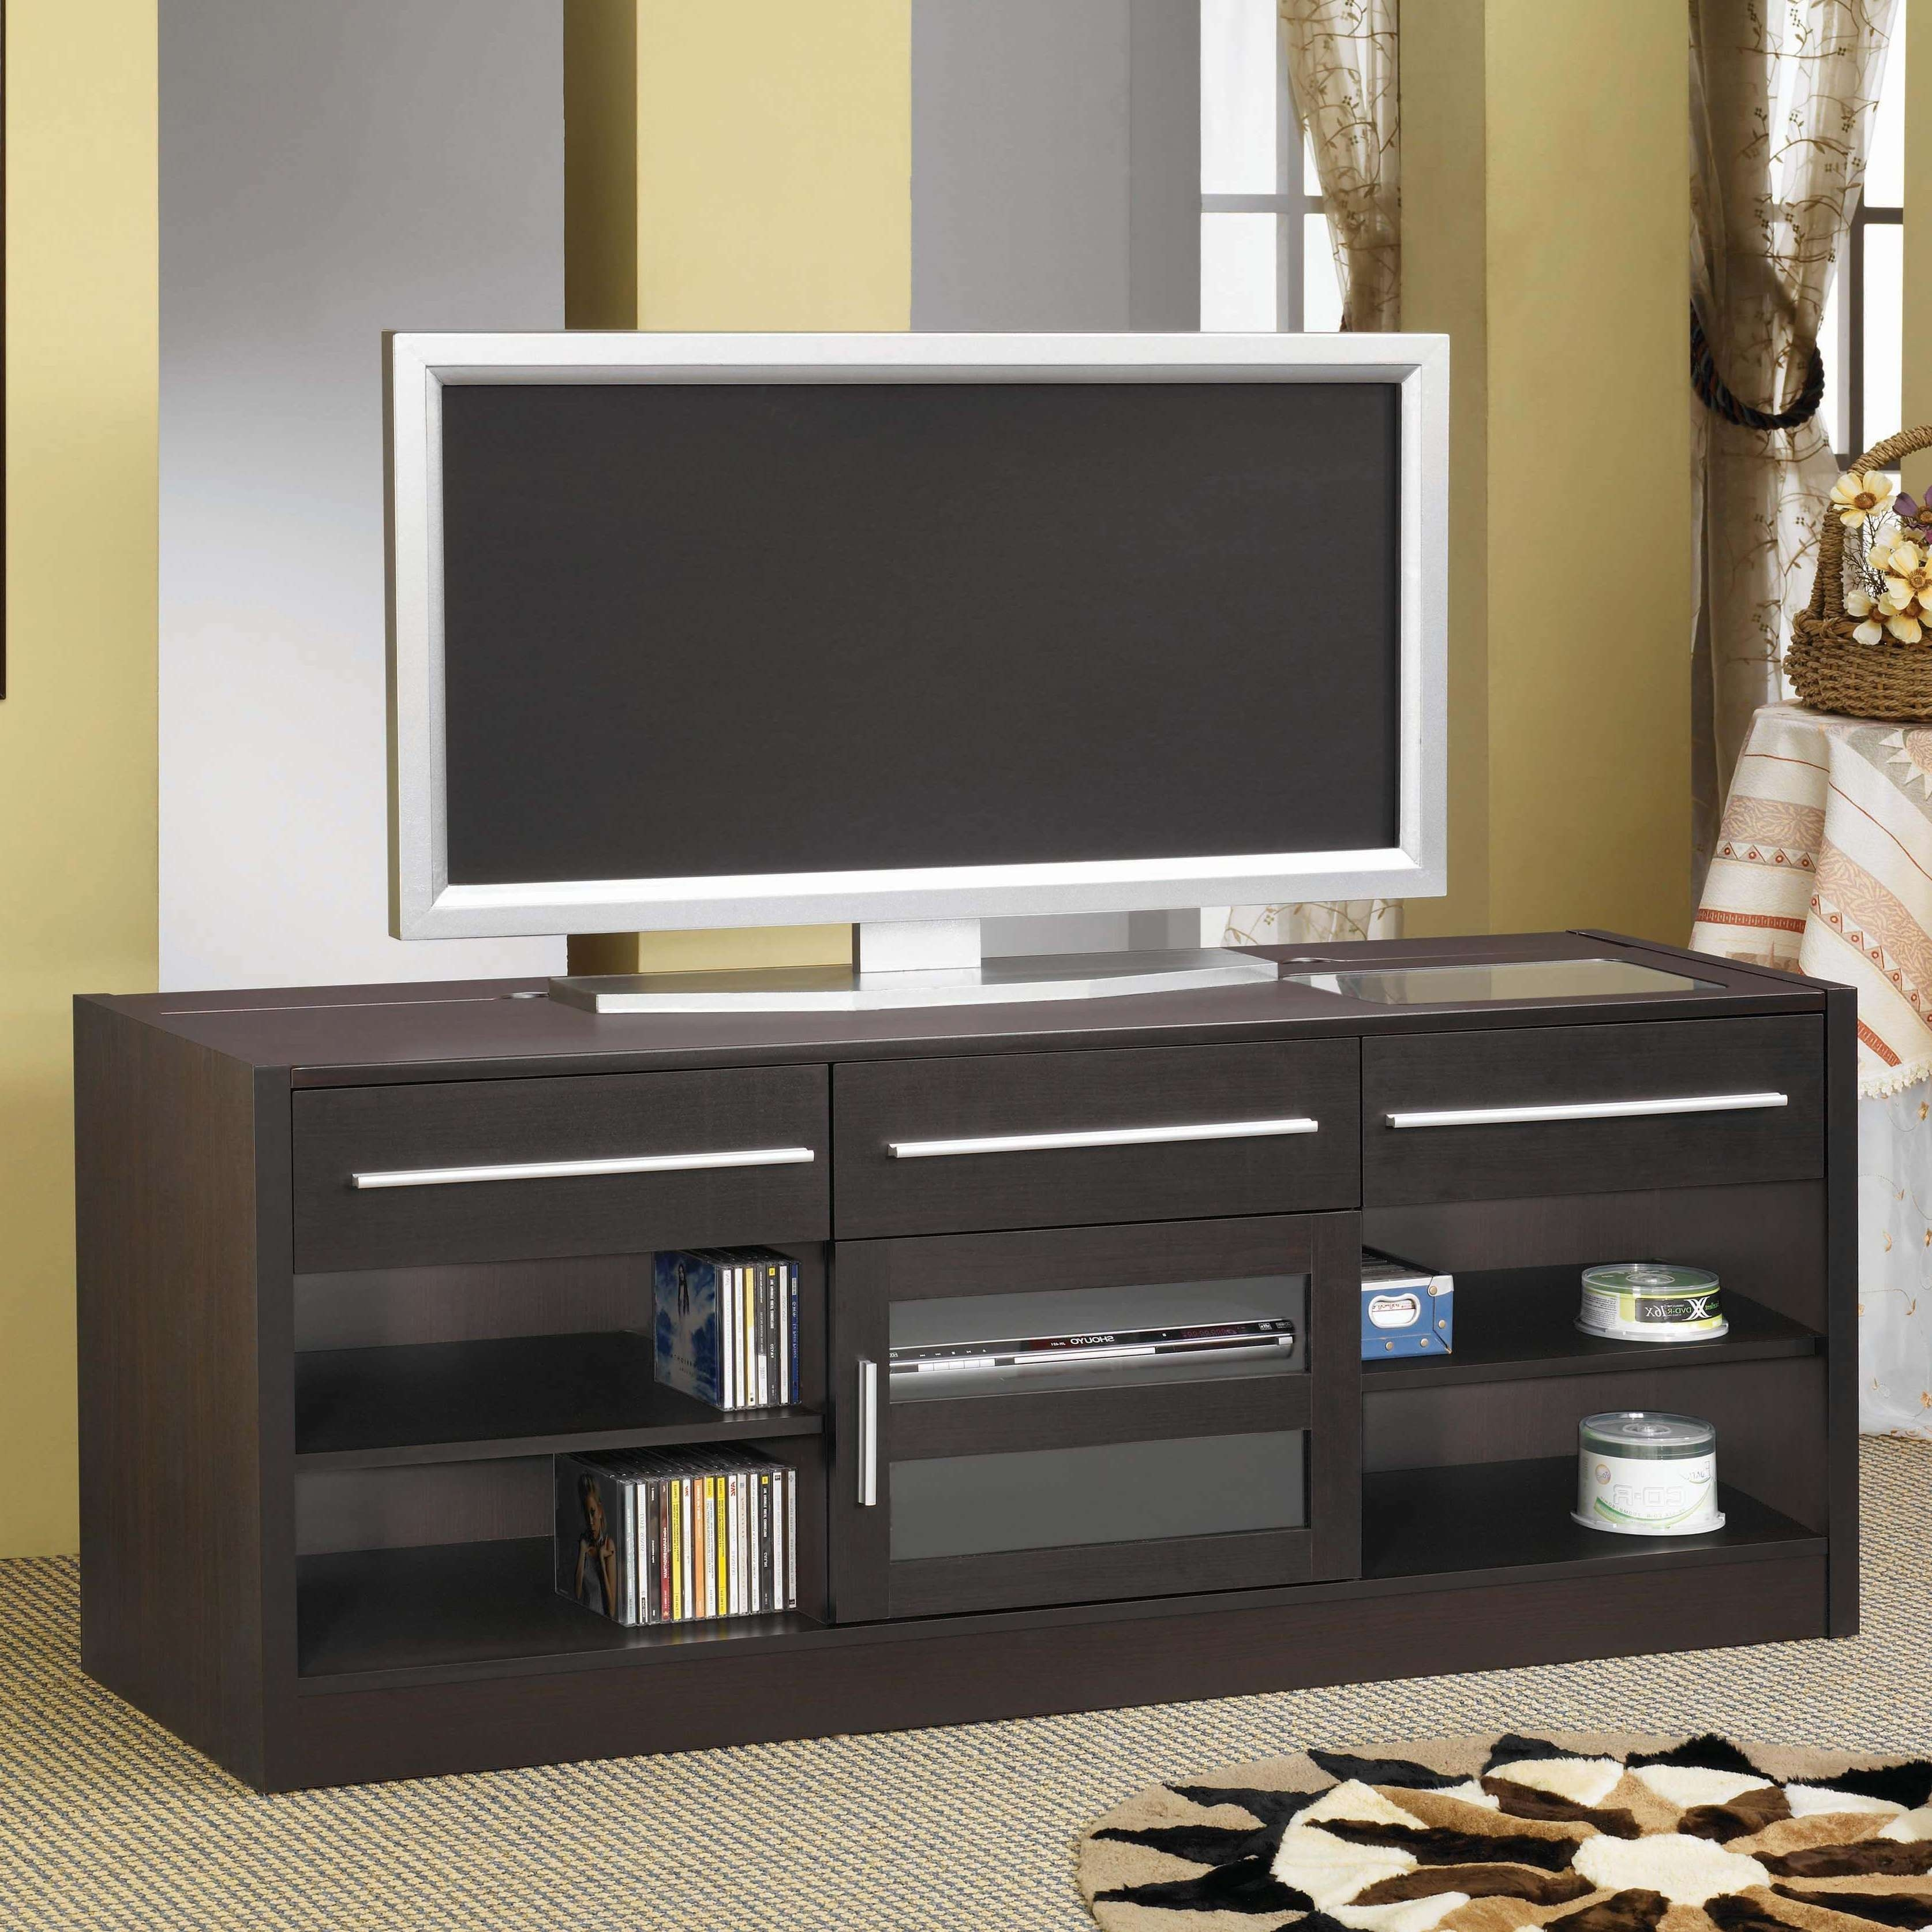 Furniture : Far Flung Breathtaking Corner Tv Stand For 55 Inch Throughout Contemporary Tv Stands For Flat Screens (View 20 of 20)